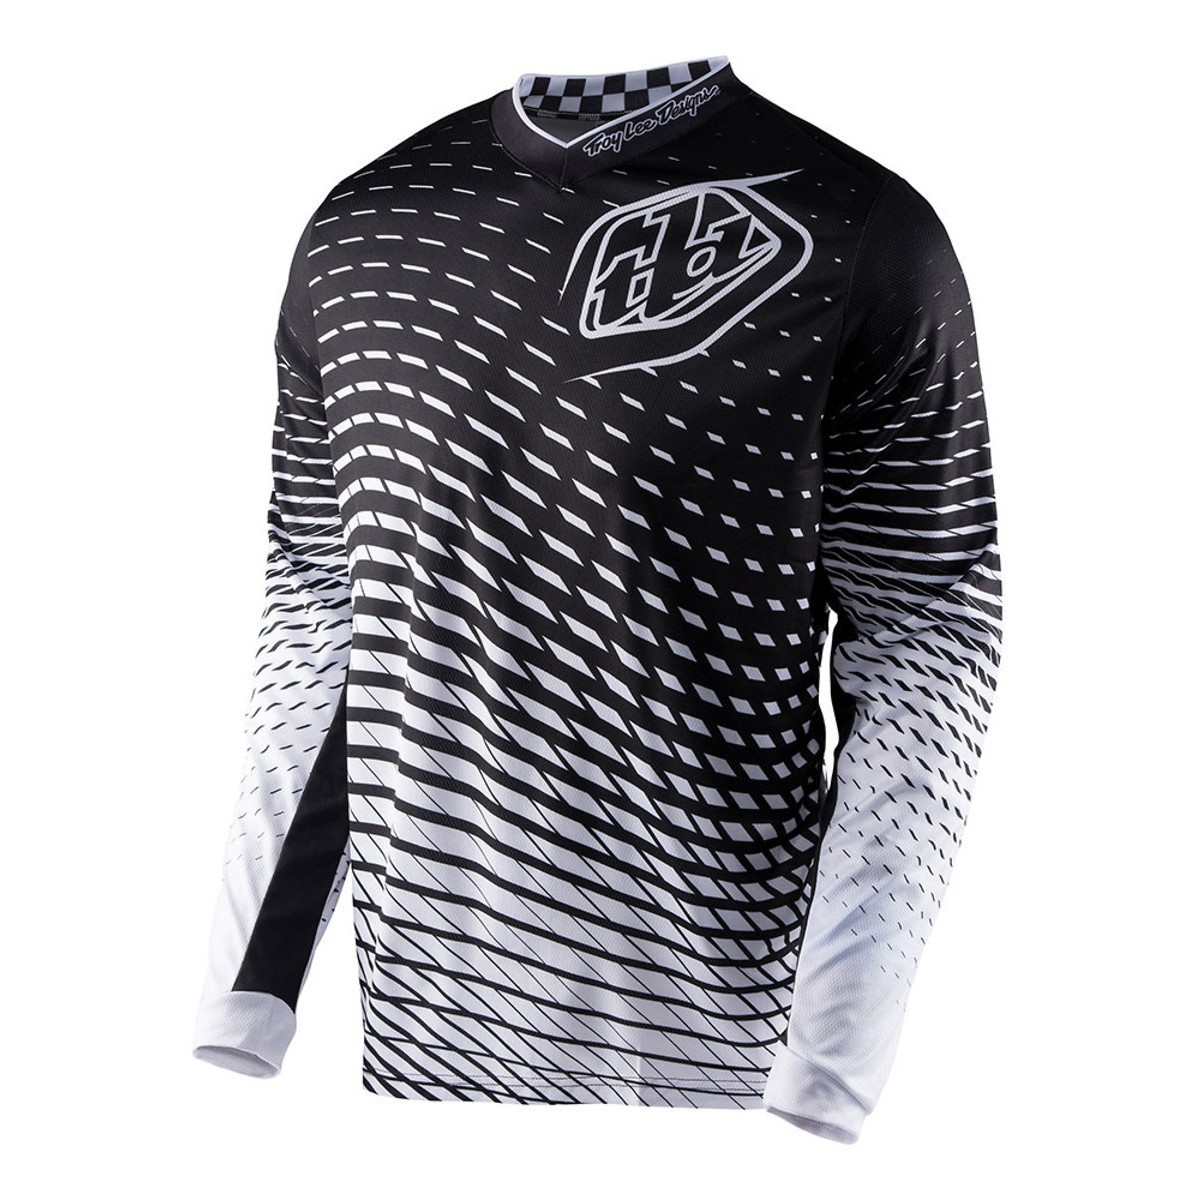 Troy Lee Designs GP Tremor Jersey & Pants  Troy Lee Designs GP Tremor Black and White